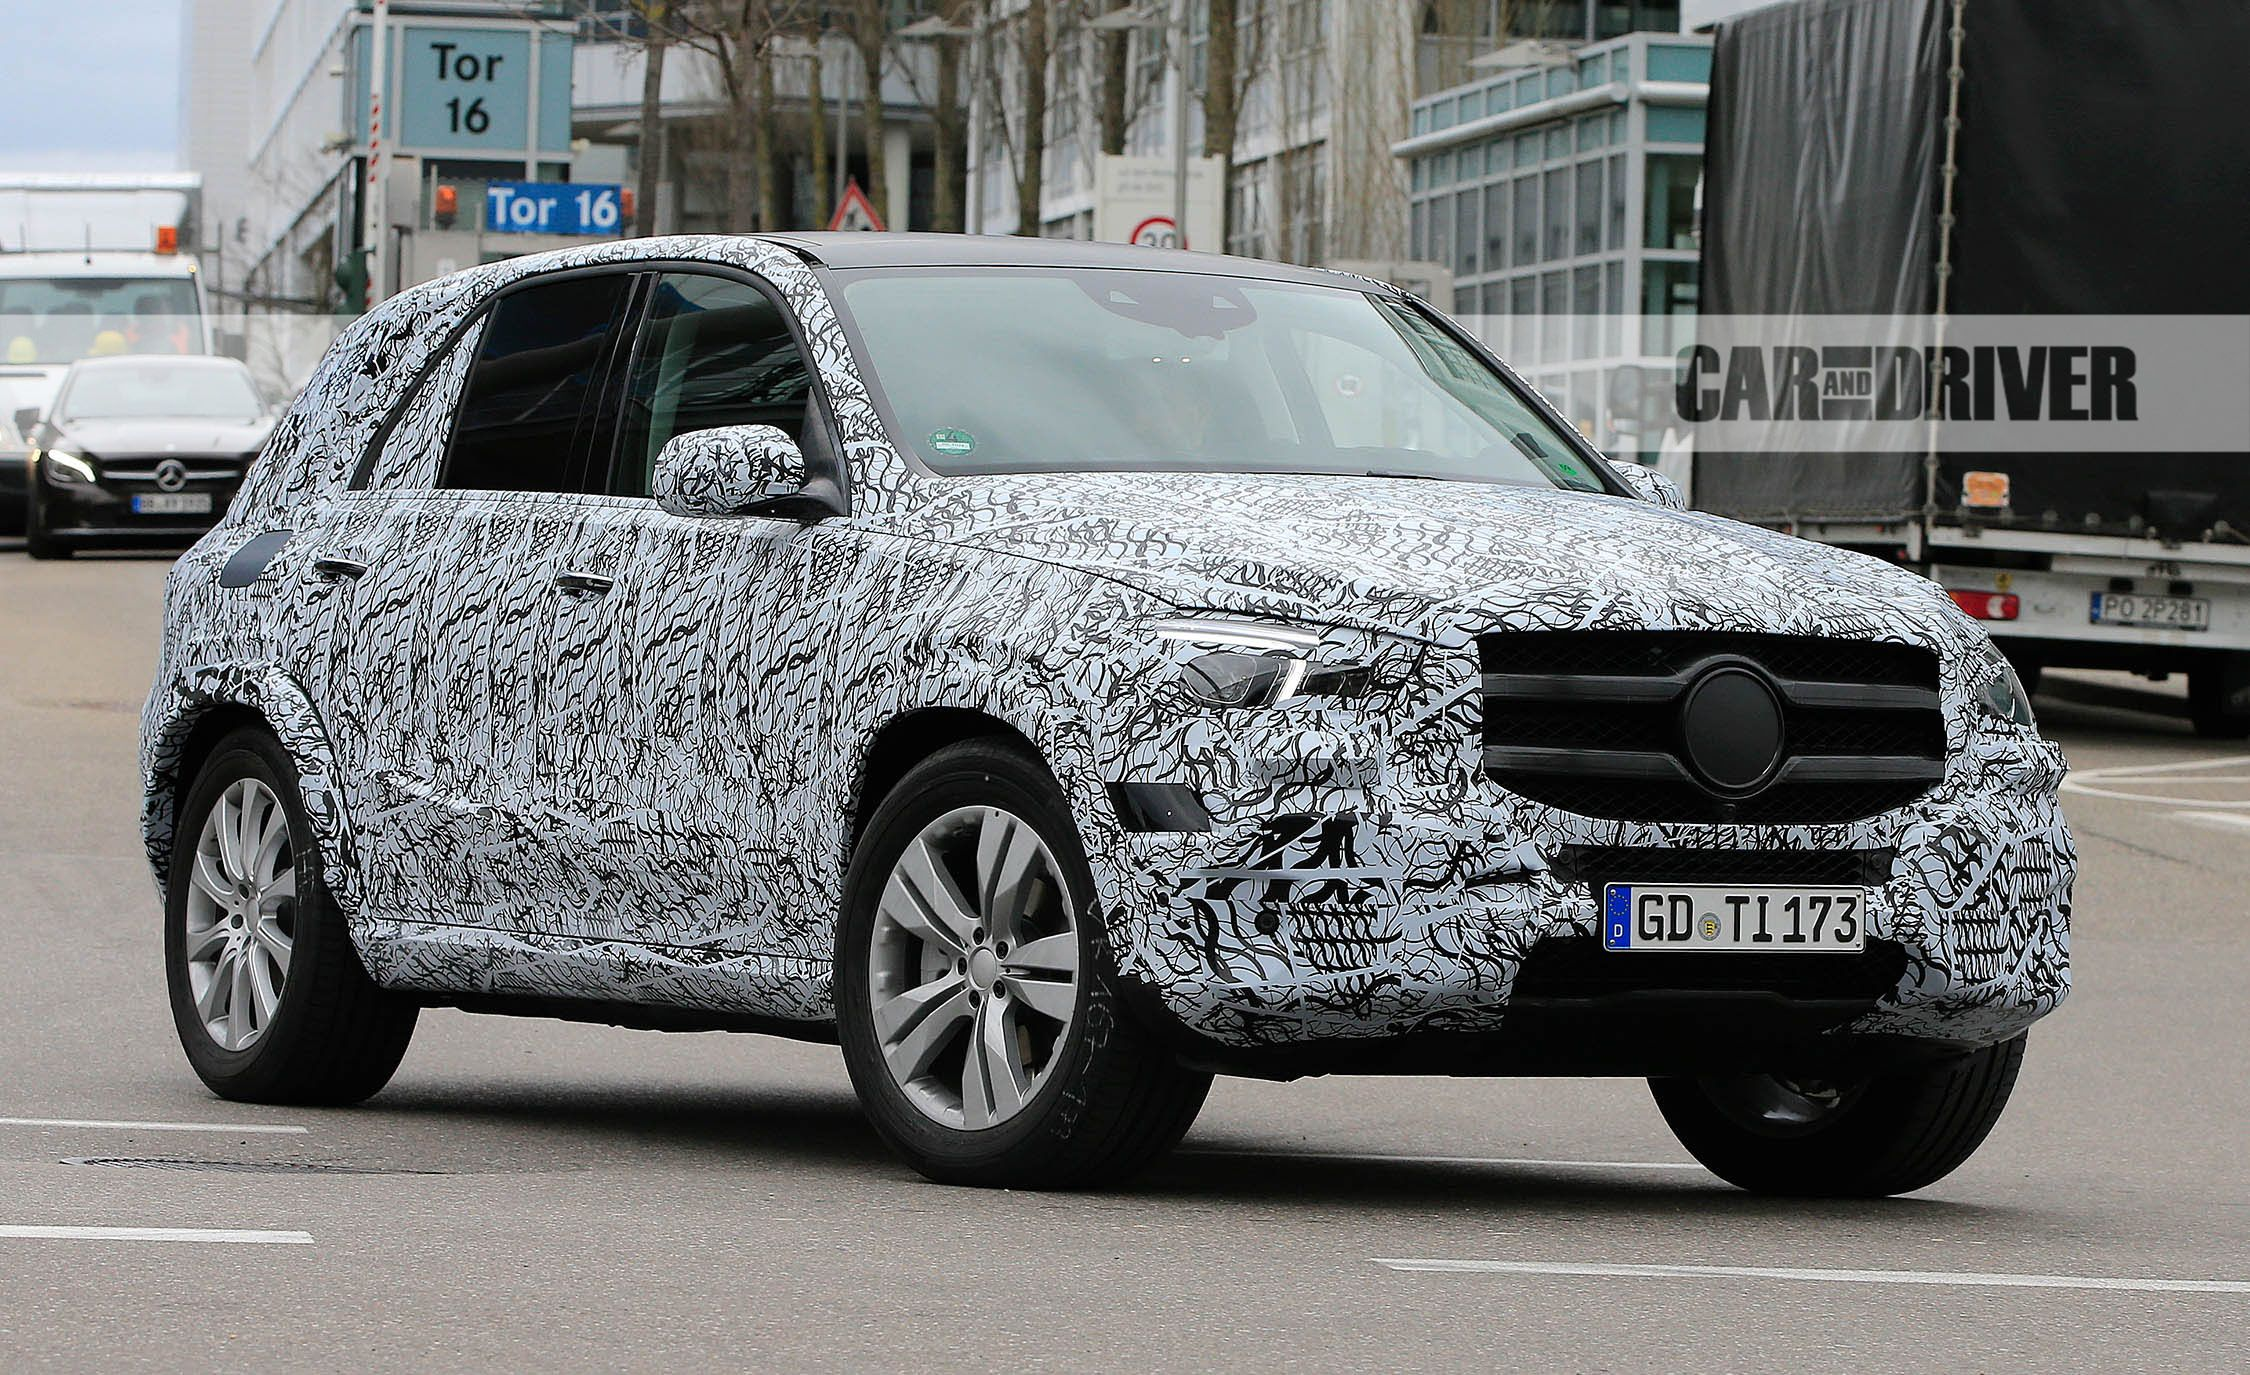 2019 Mercedes Benz GLE Class Spied Outside The Factory